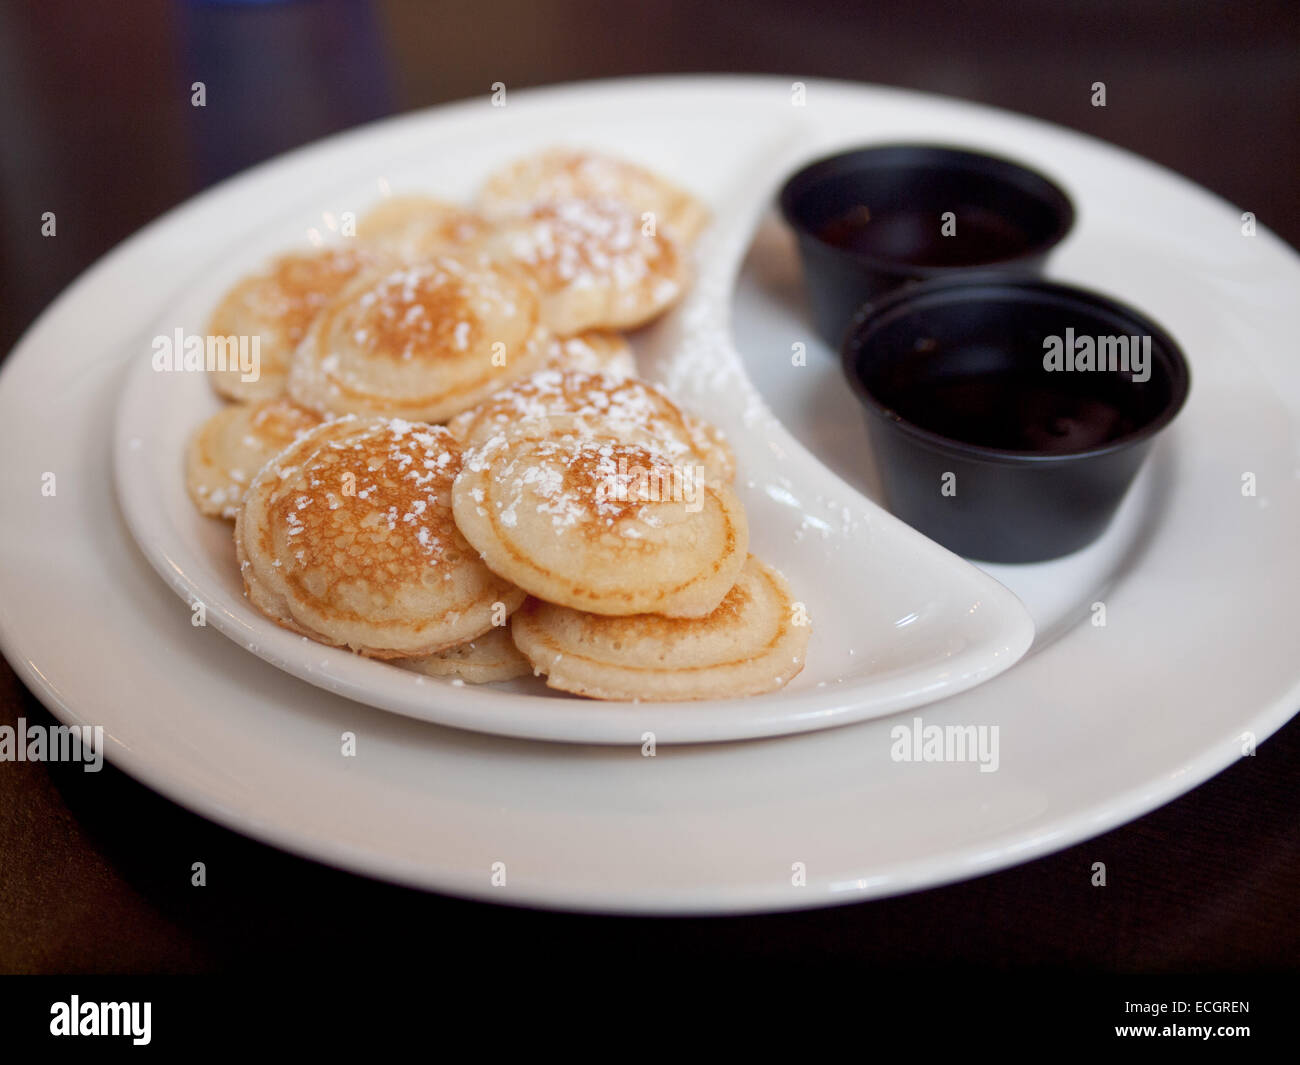 Bite-sized North American dollar pancakes, dusted with powdered sugar. - Stock Image